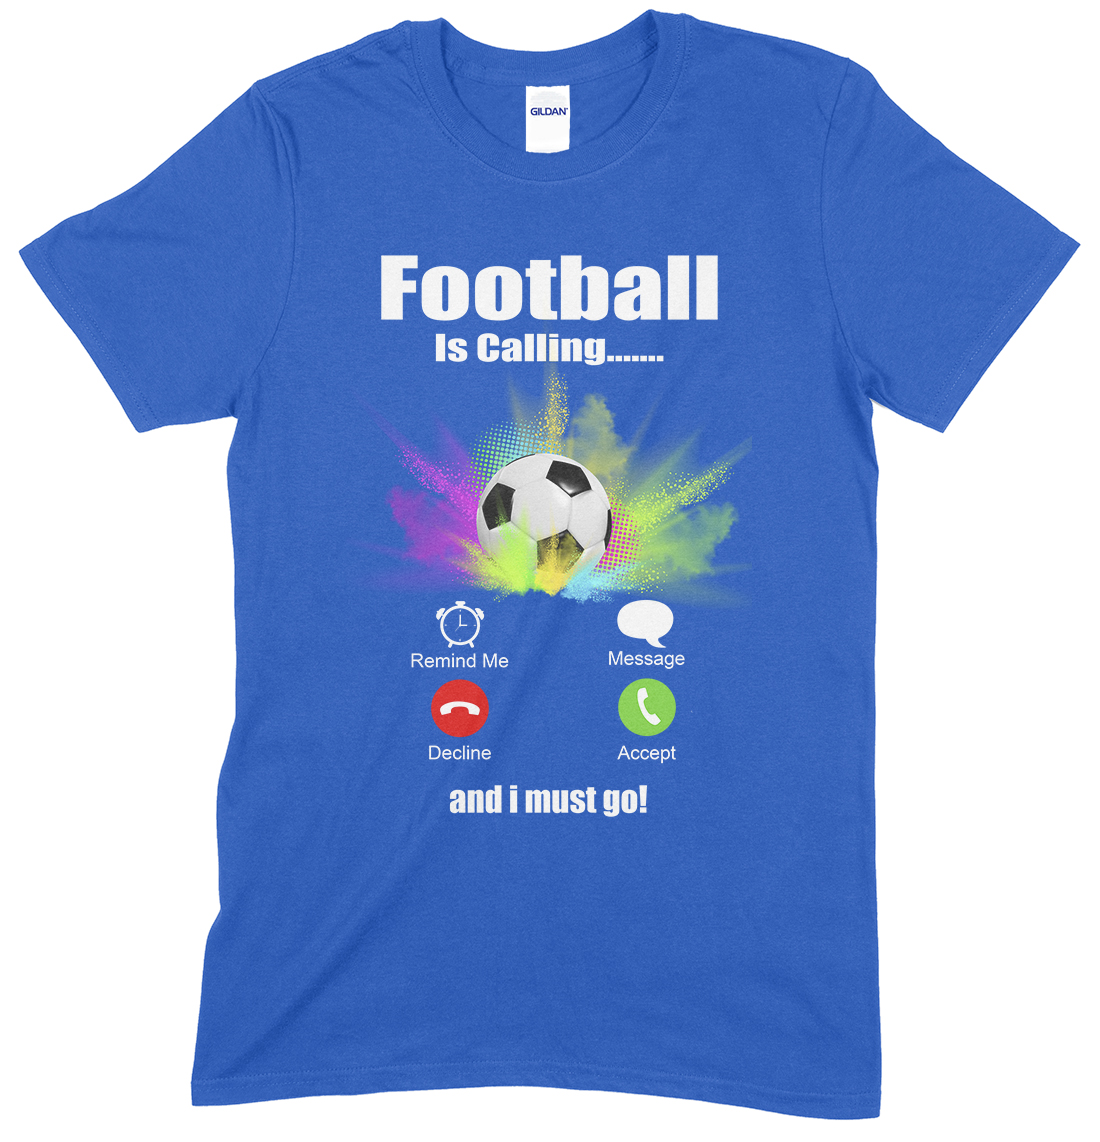 Adults Novelty Funny Unisex T Shirt, Football is Calling And I Must Go